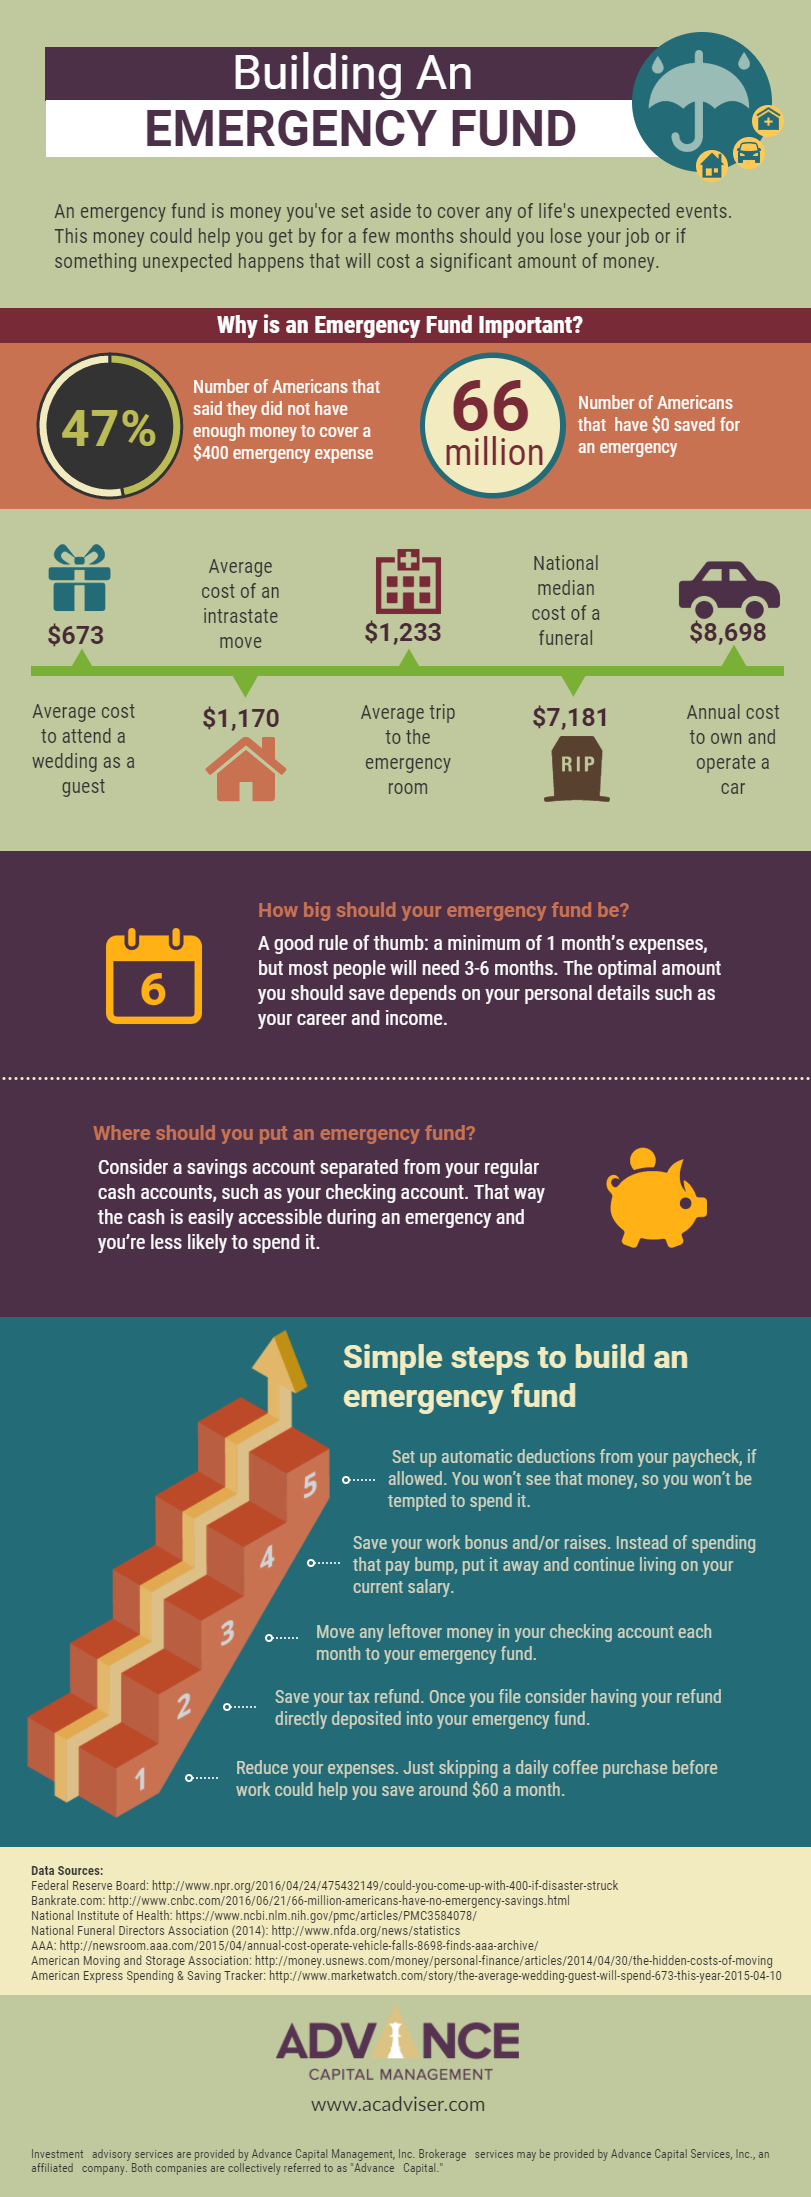 A Quick Guide to Building an Emergency Fund.png